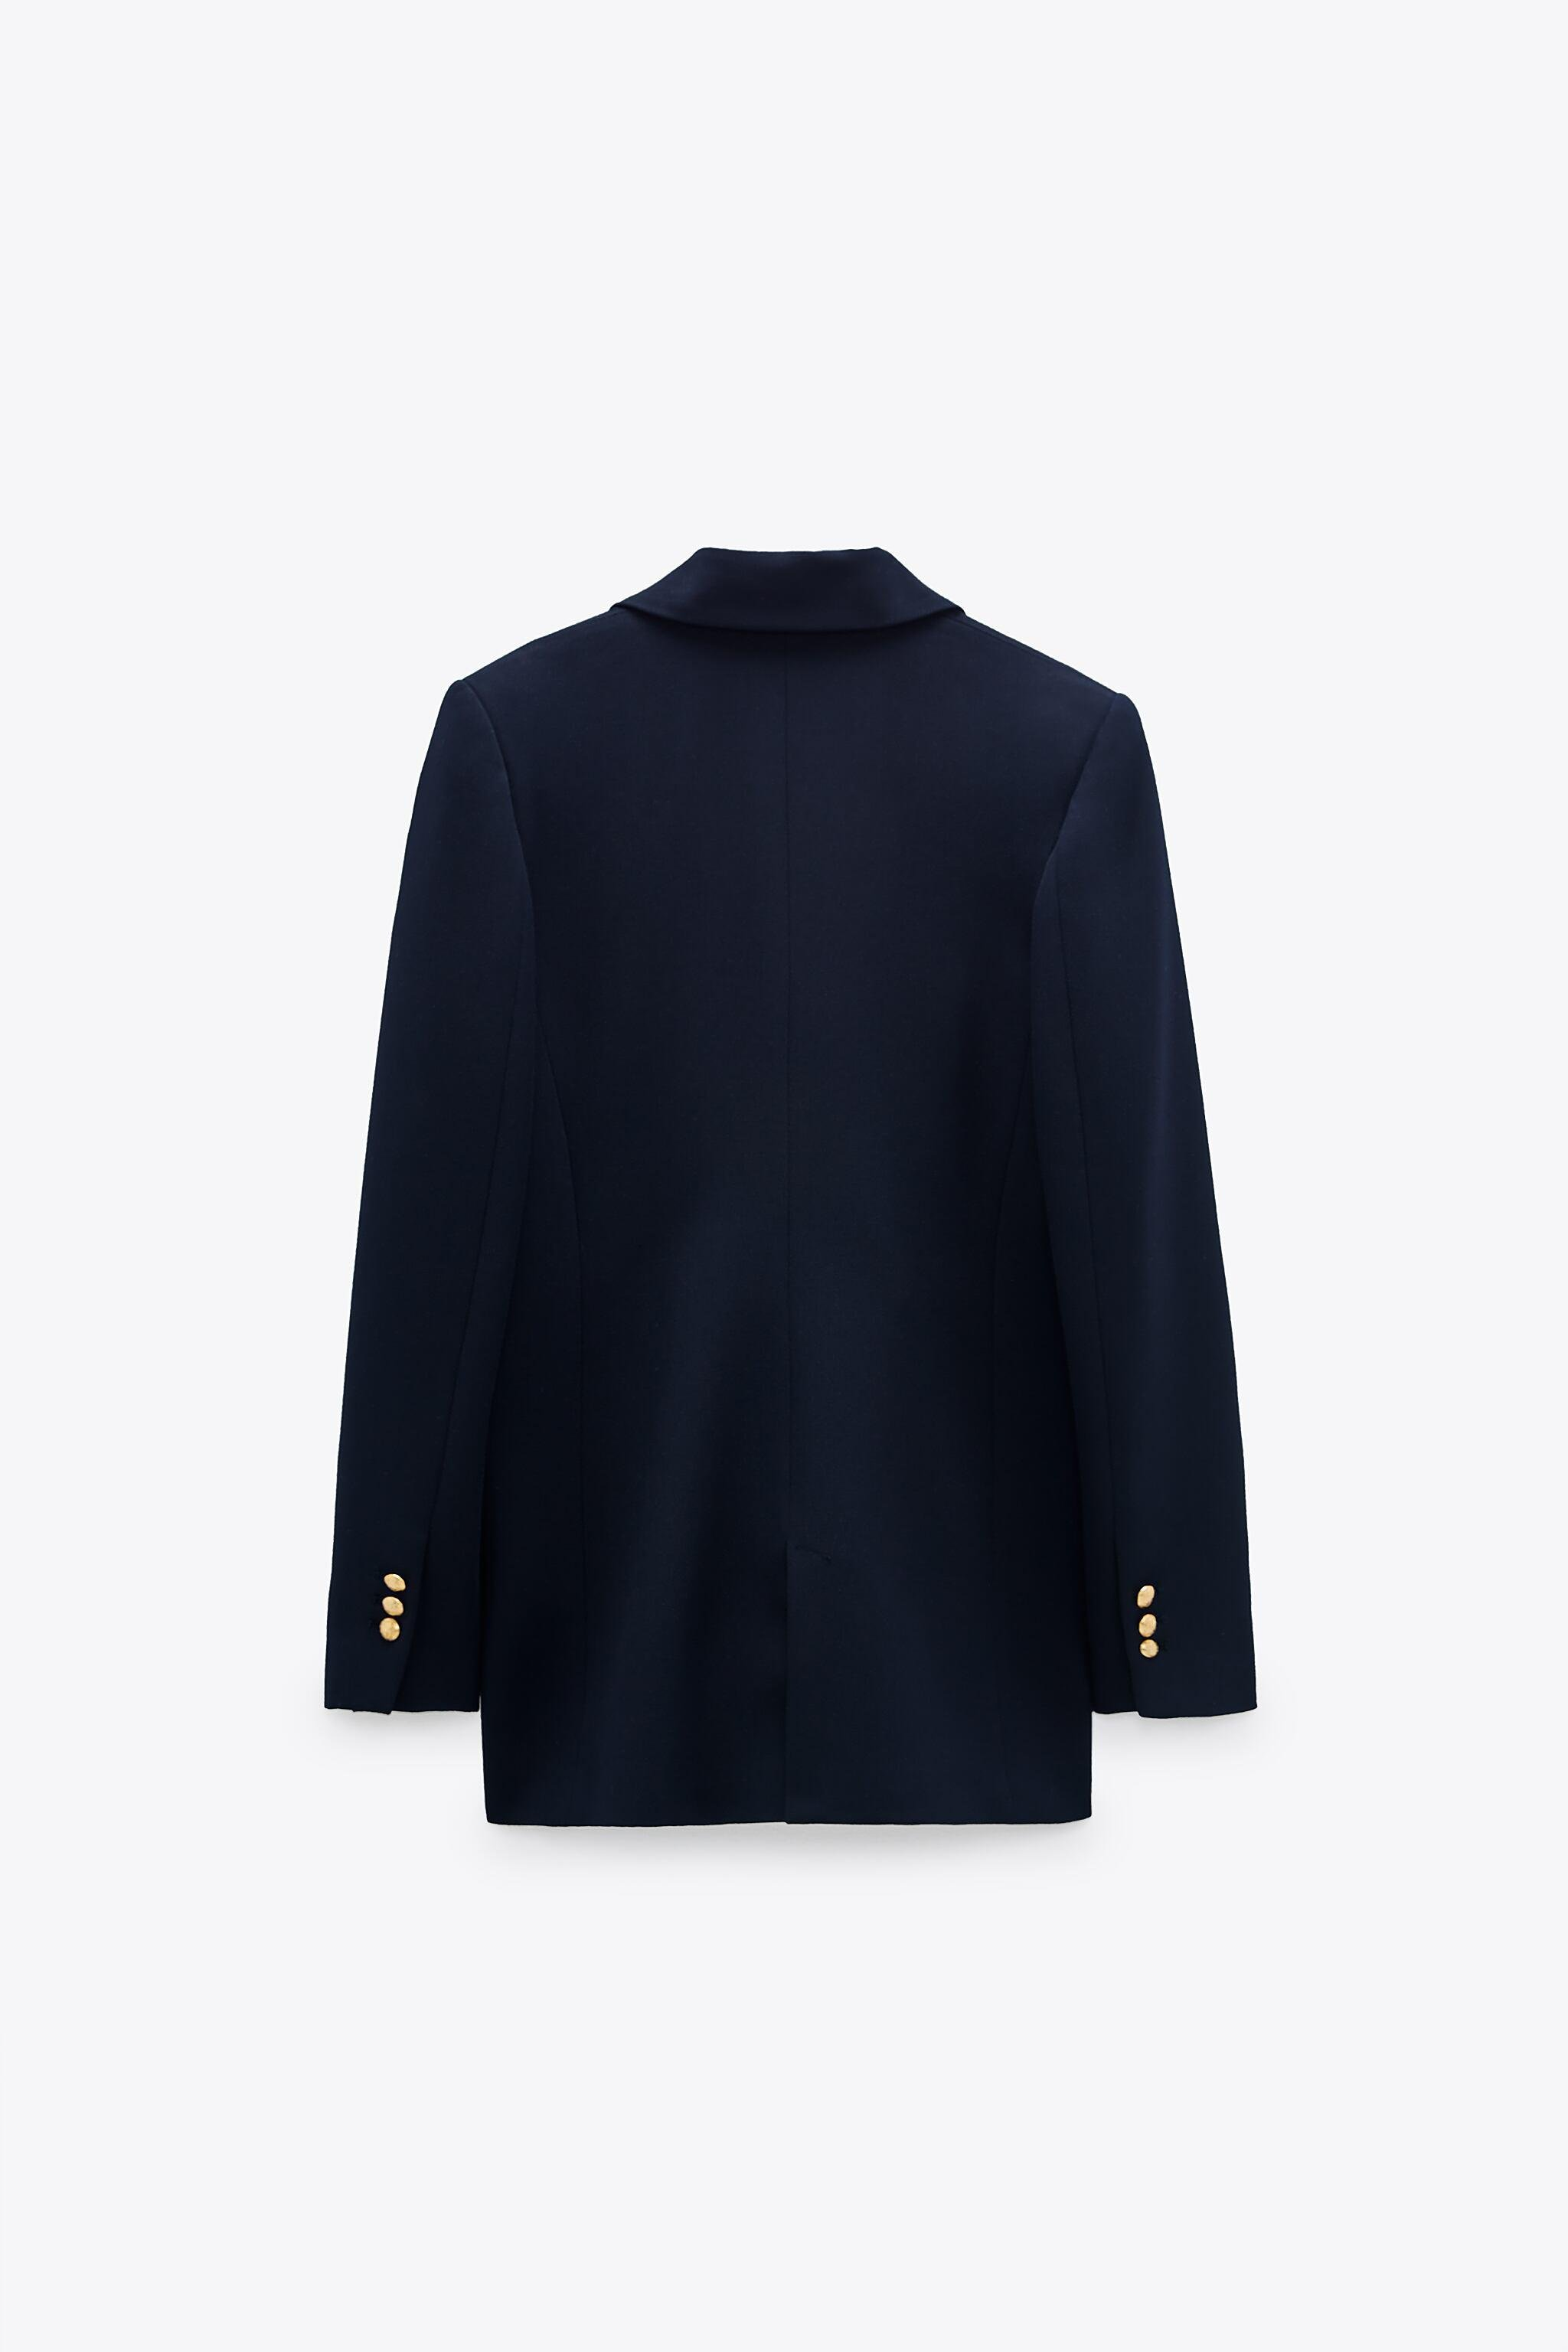 TAILORED BLAZER WITH BUTTONS 5